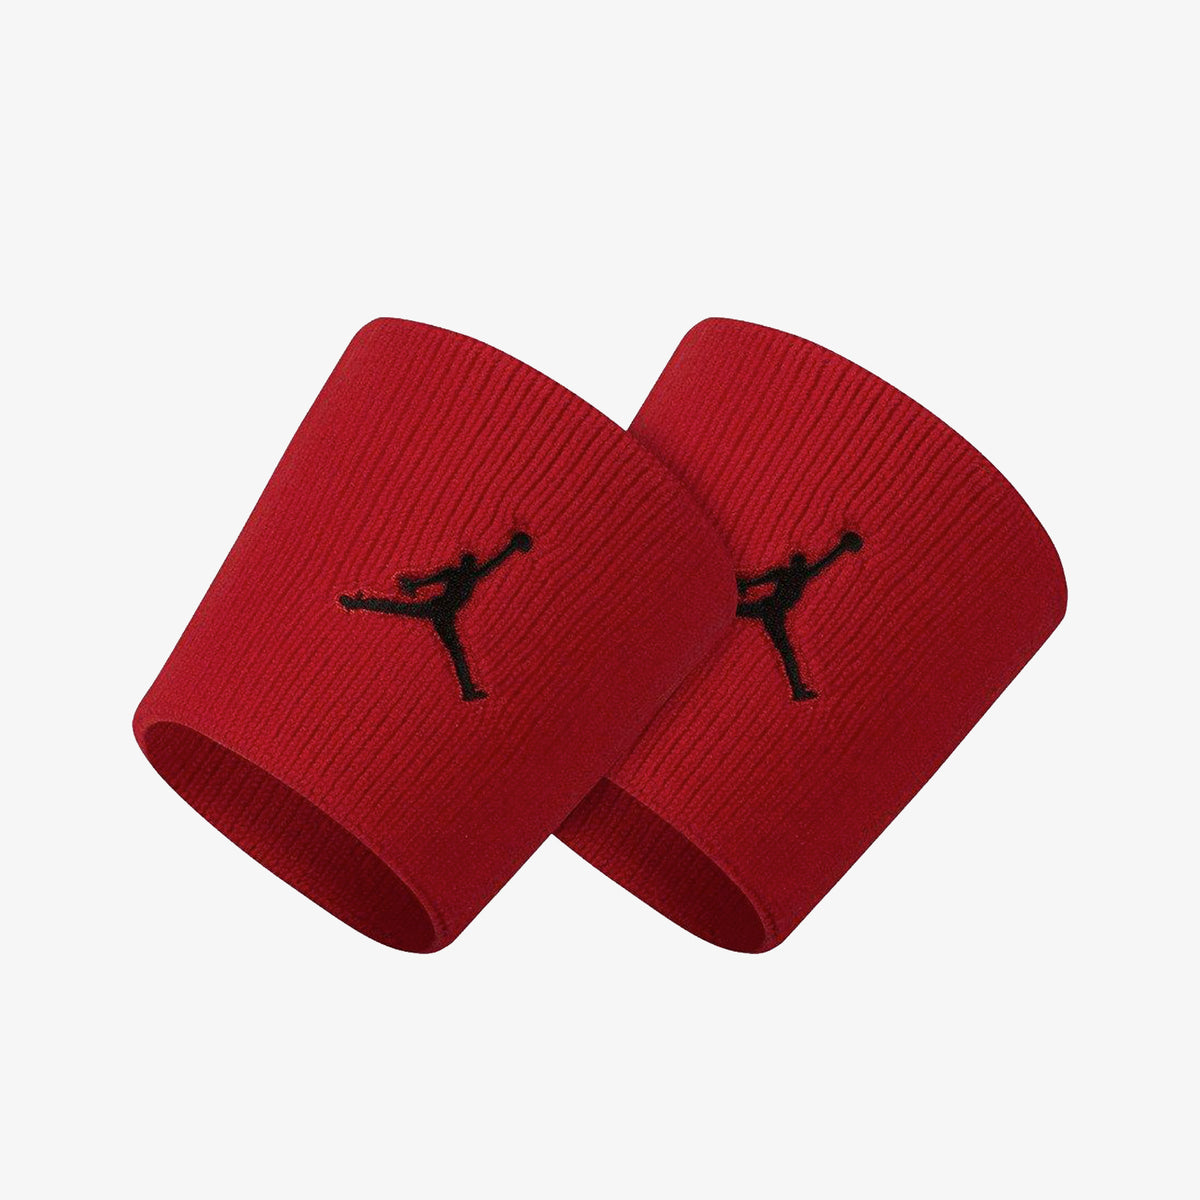 Jordan Jumpman Wristbands - Red/Black